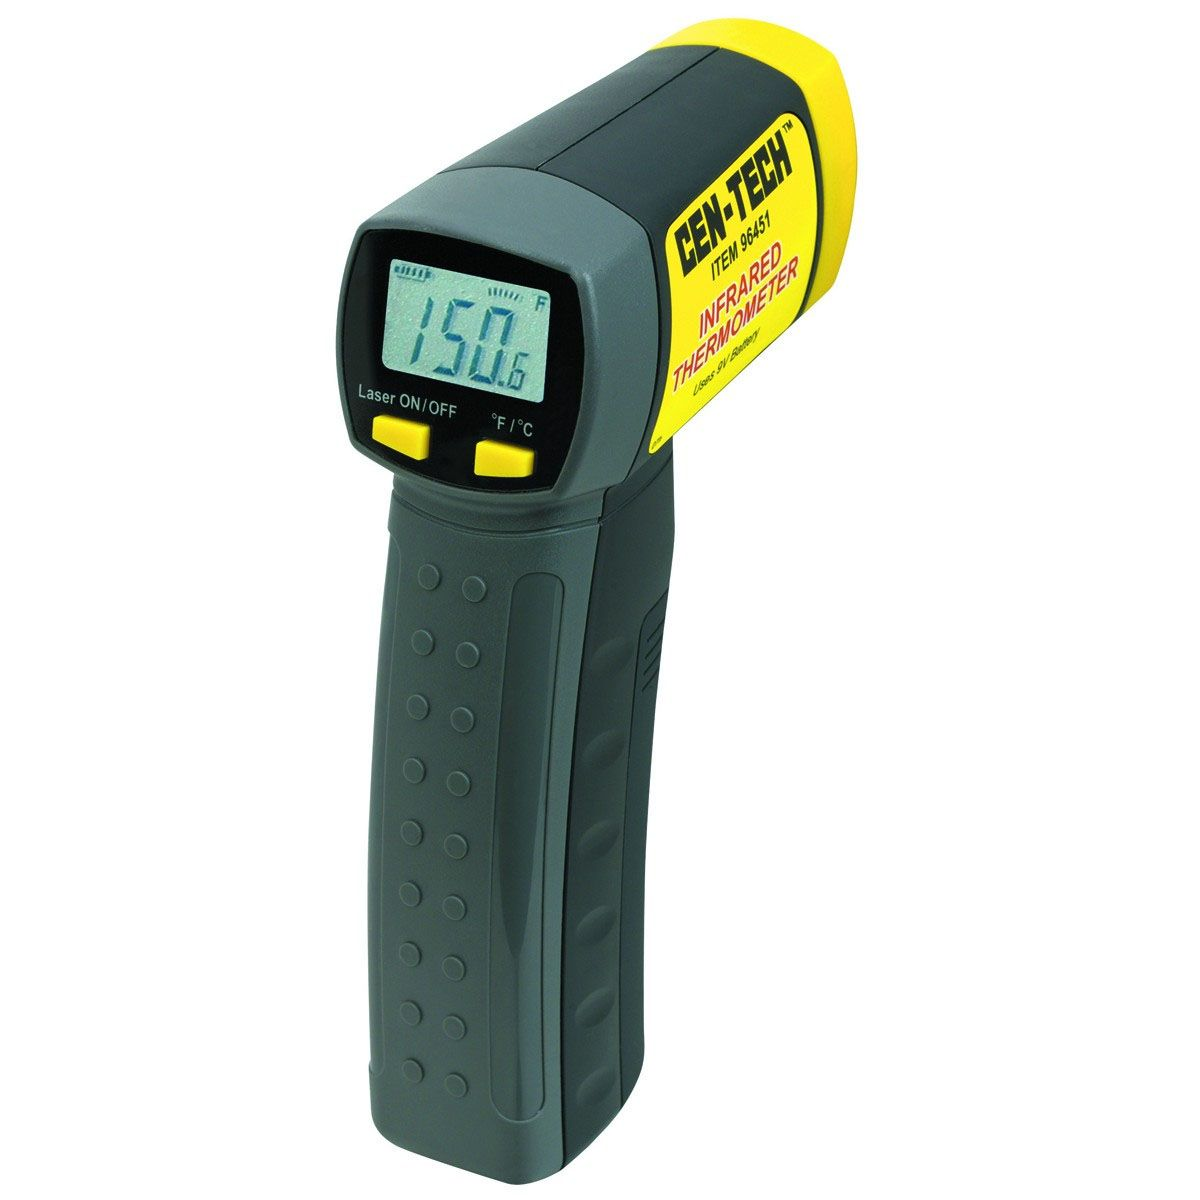 A ghost hunting laser ir digital thermometer is a vital